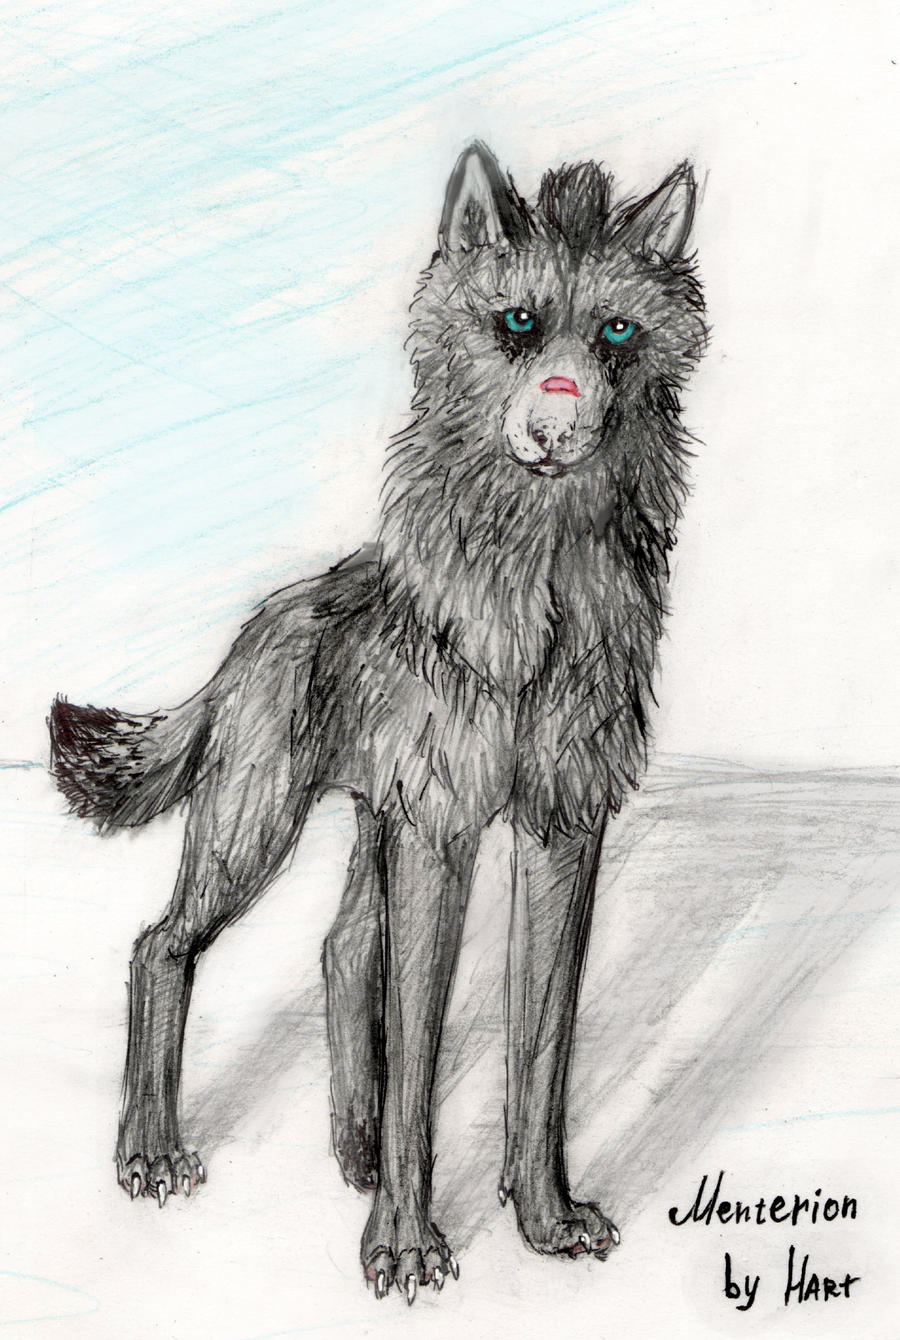 Menterion by Hartwolf